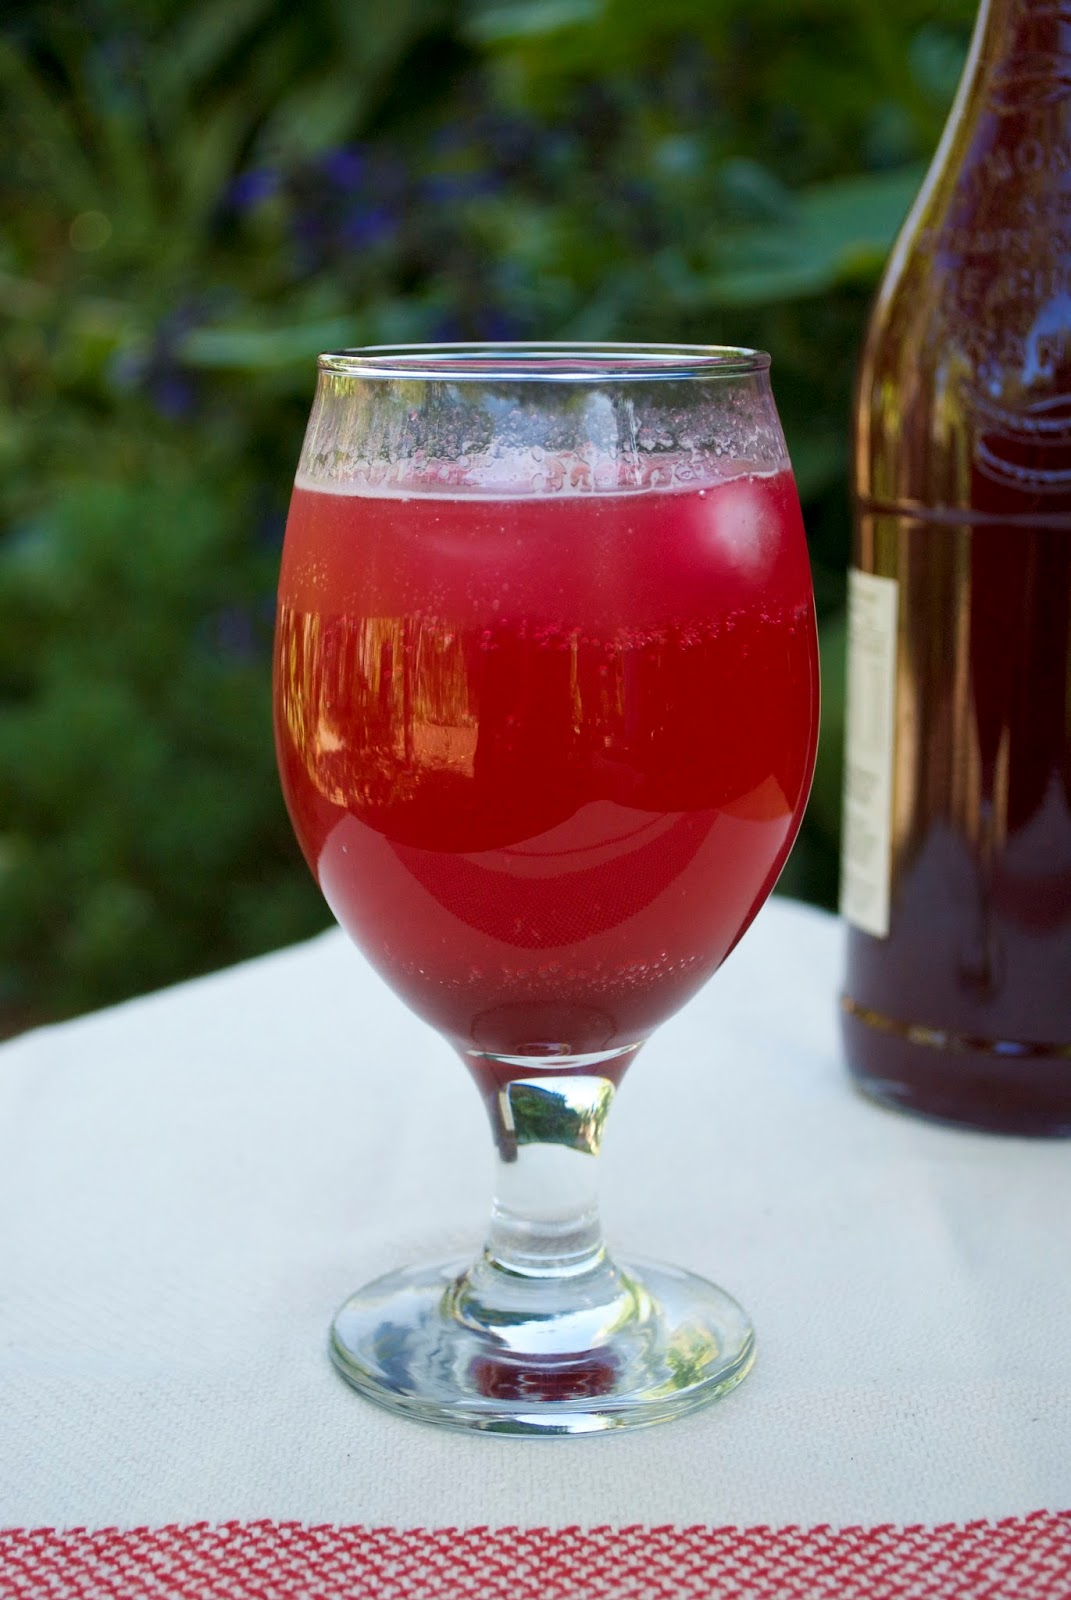 Kelly casanova prickly pear syrup recipe - Fir tree syrup recipe and benefits ...